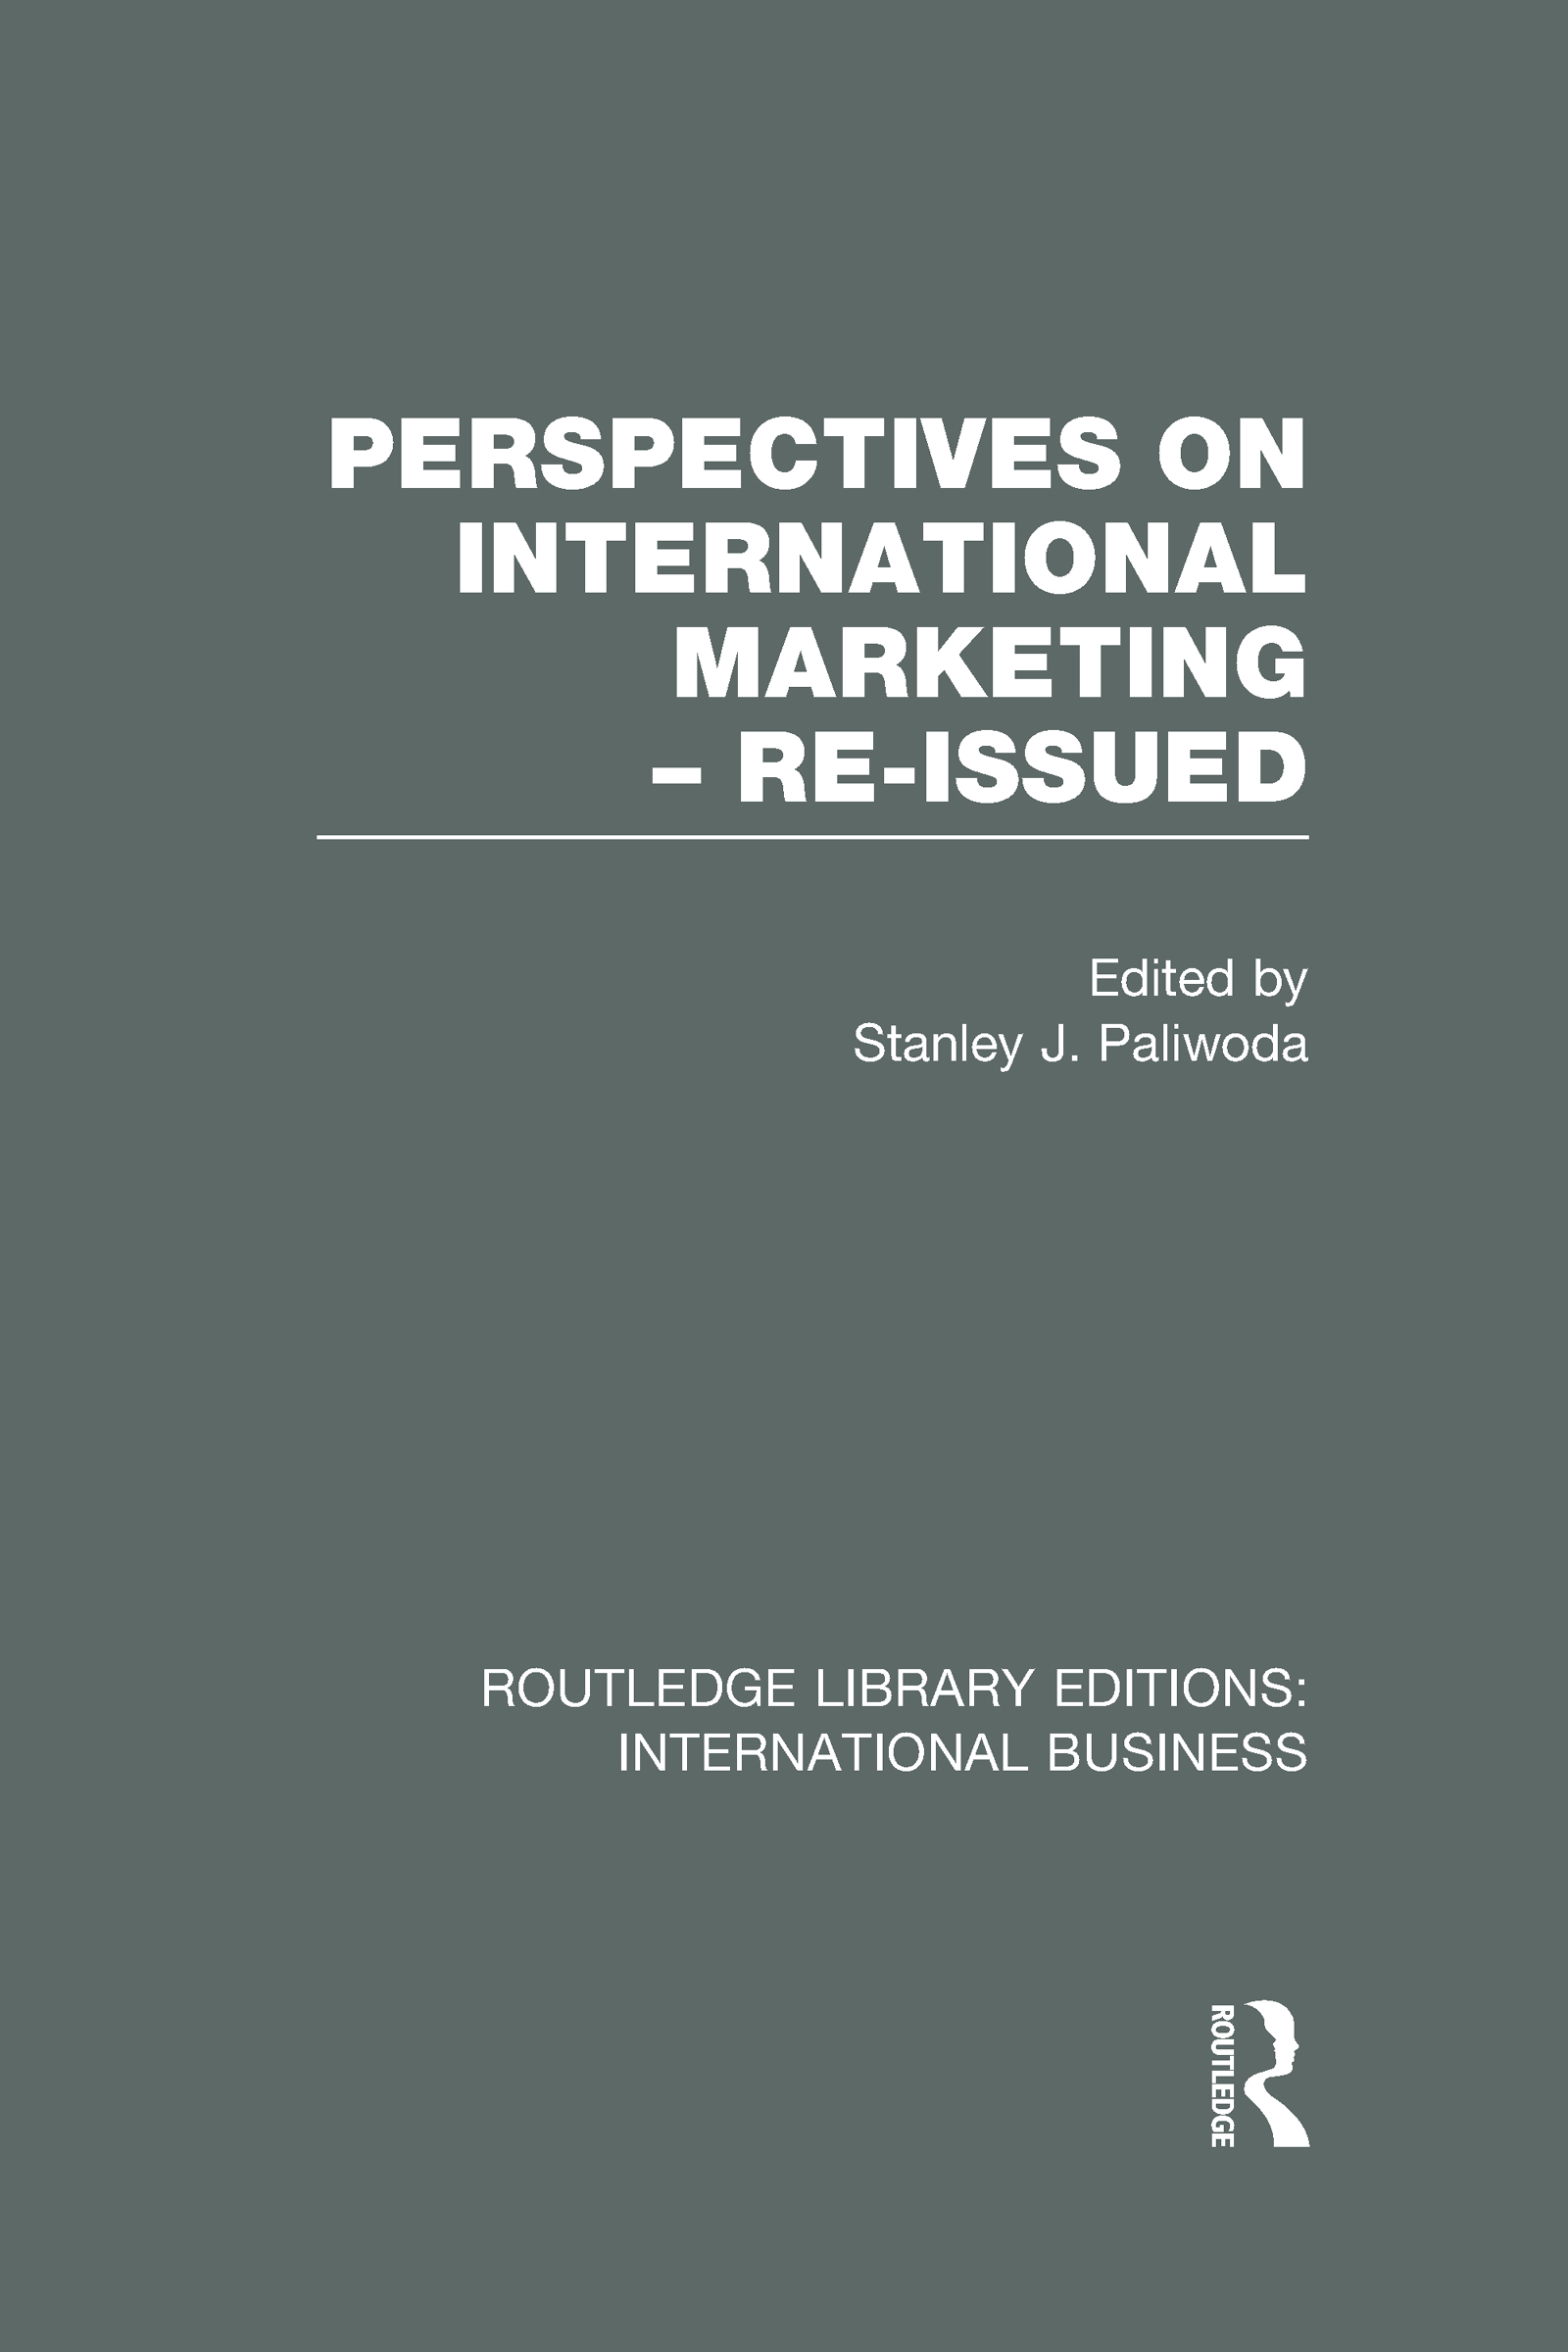 Perspectives on International Marketing - Re-issued (RLE International Business) (Hardback) book cover